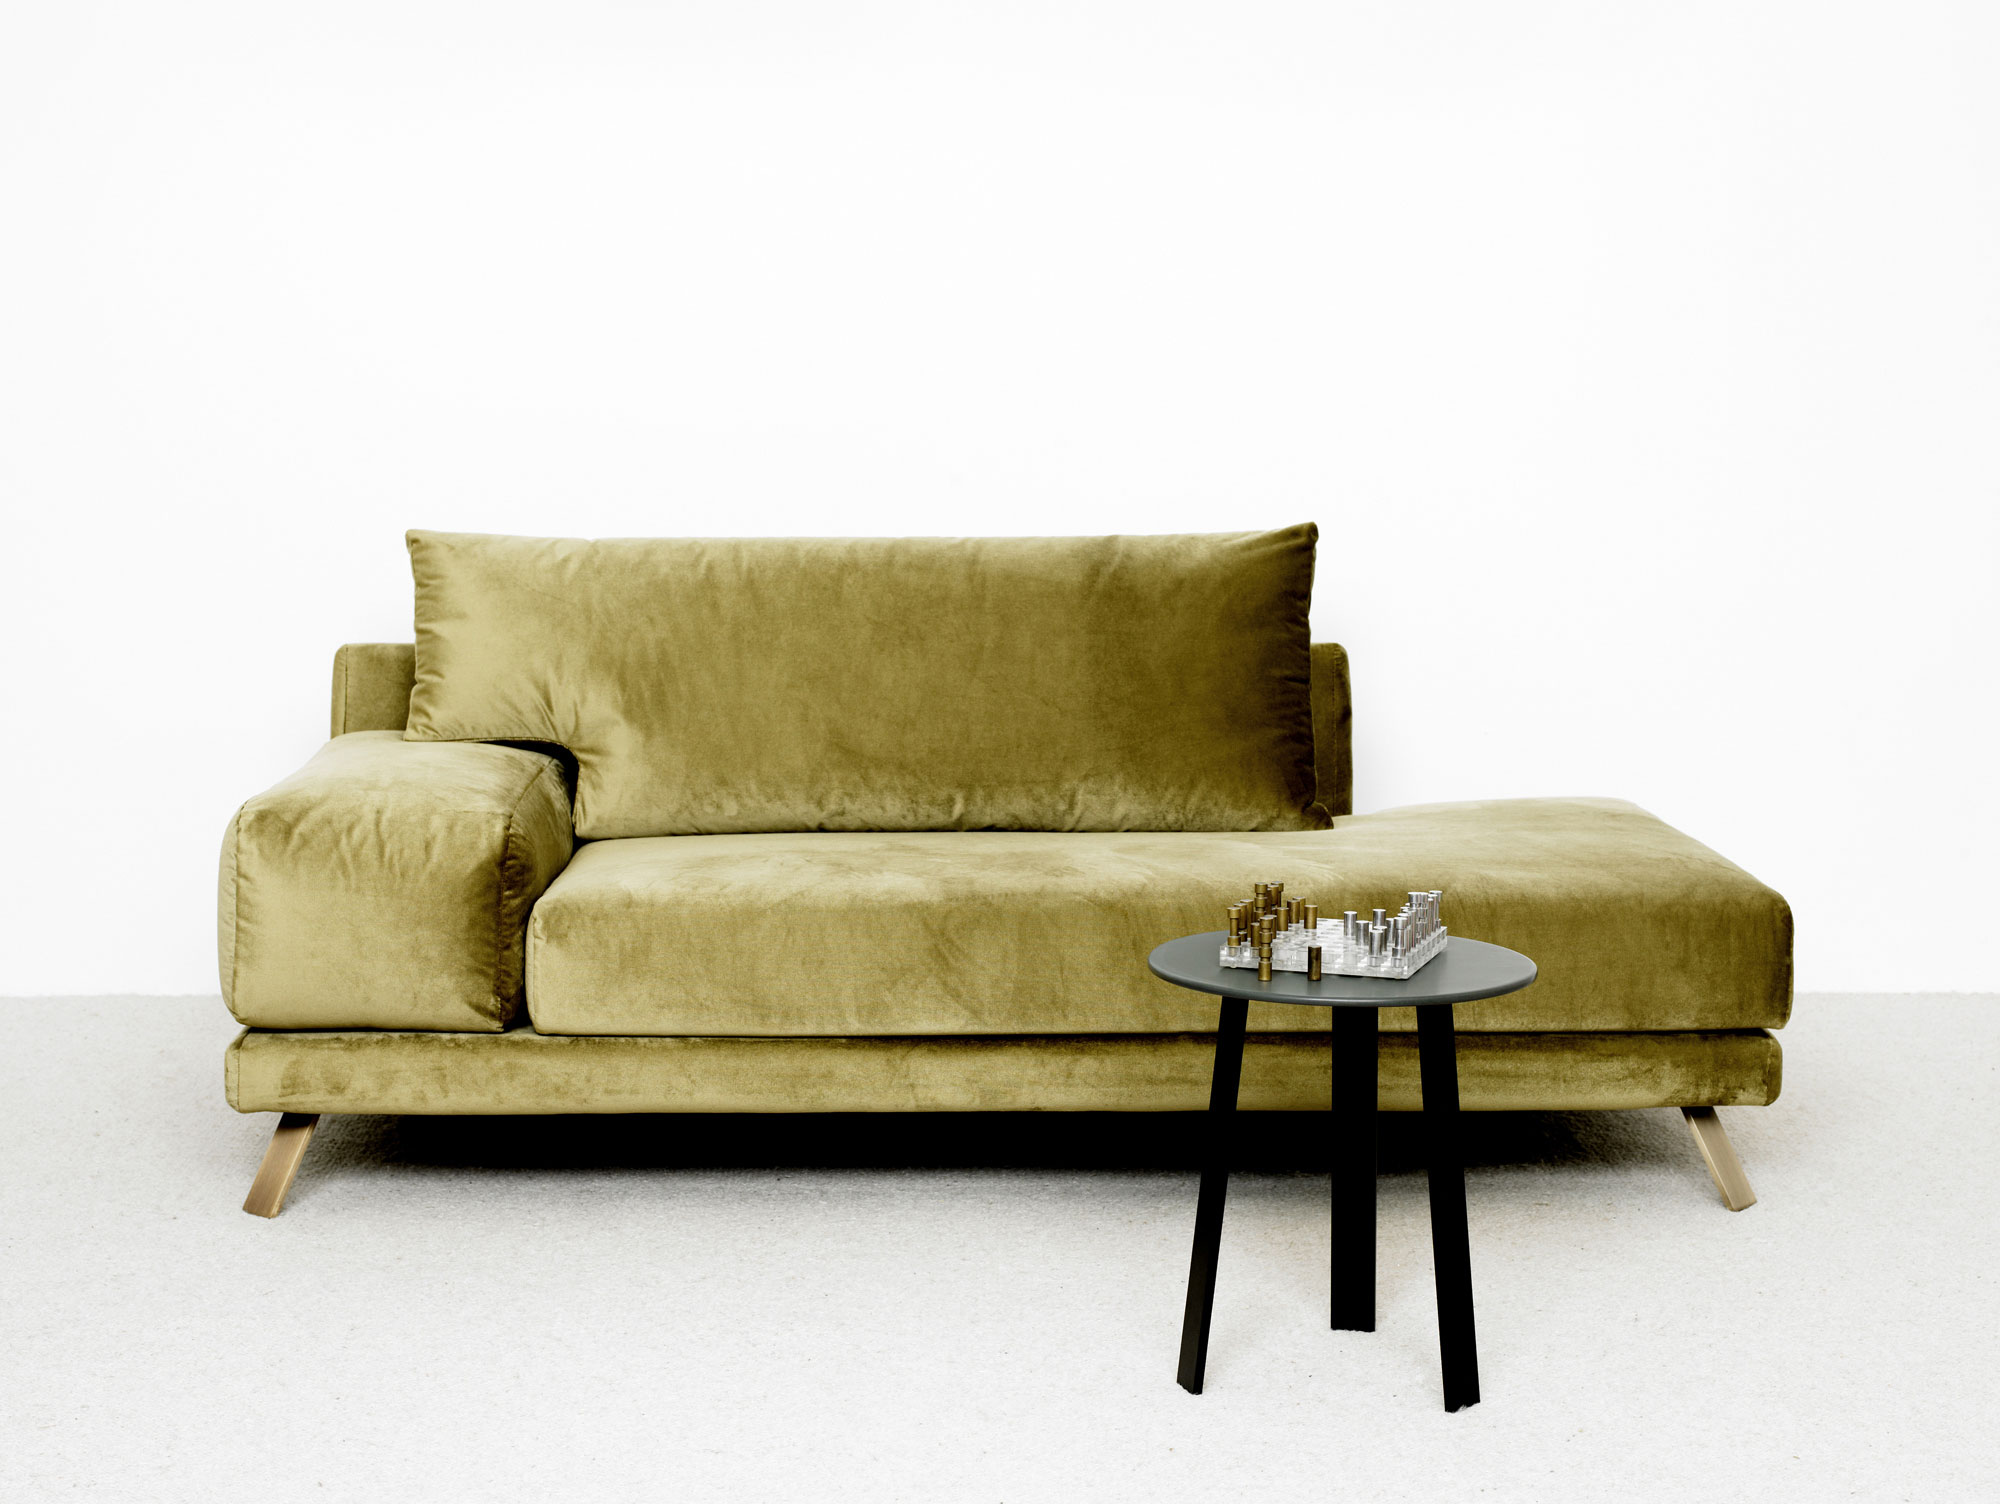 bob sofa christophe delcourt bouvier 3 seater 2 fabric set meridienne ian table appoint eze